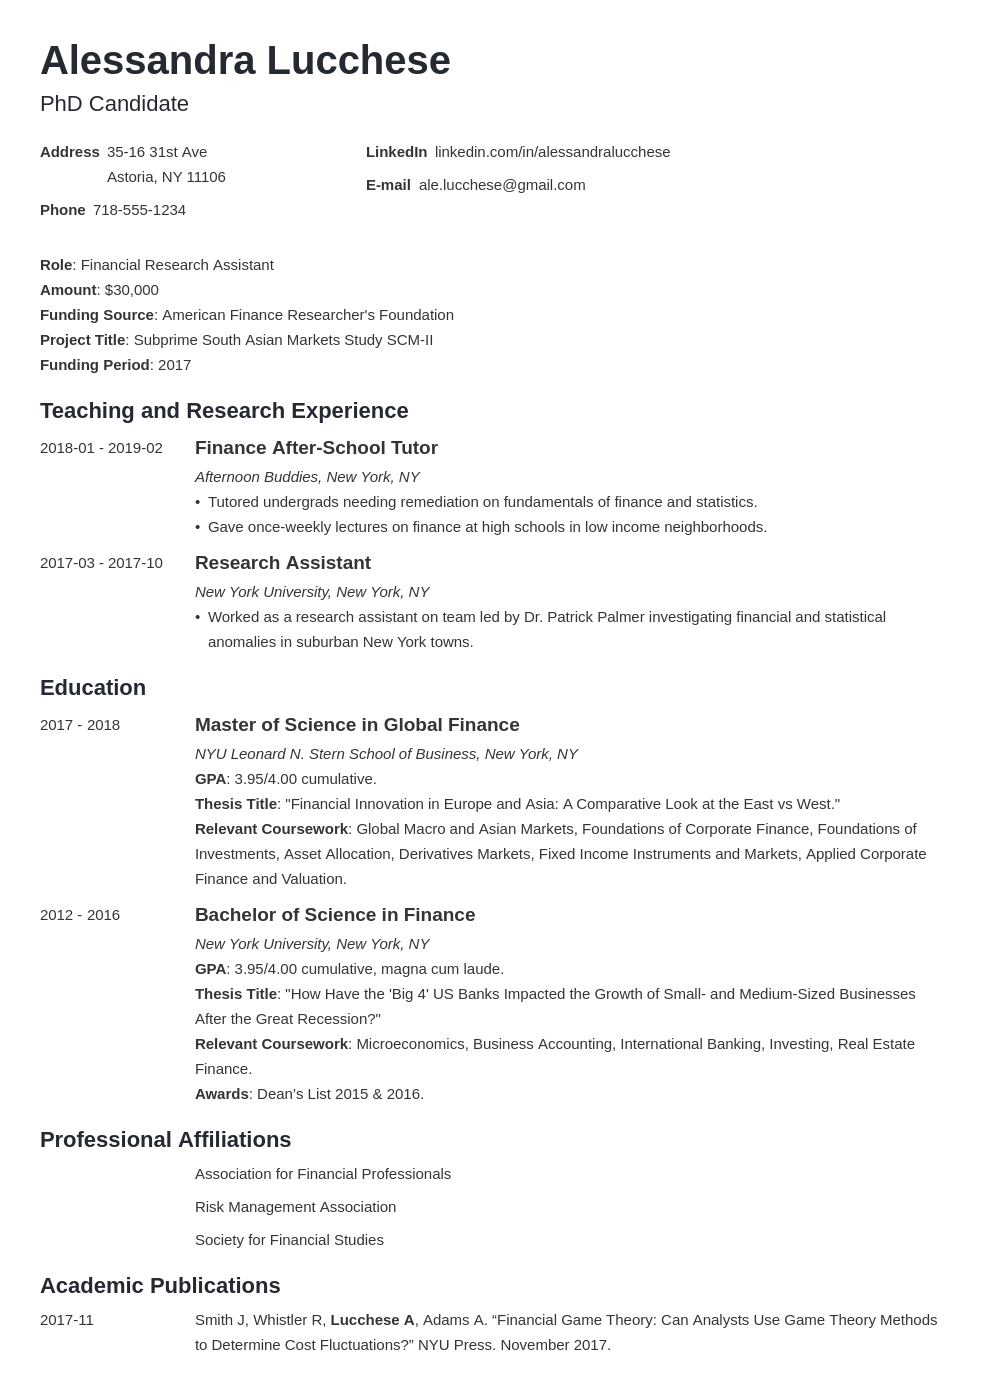 Resume For Graduate School Application Template Examples